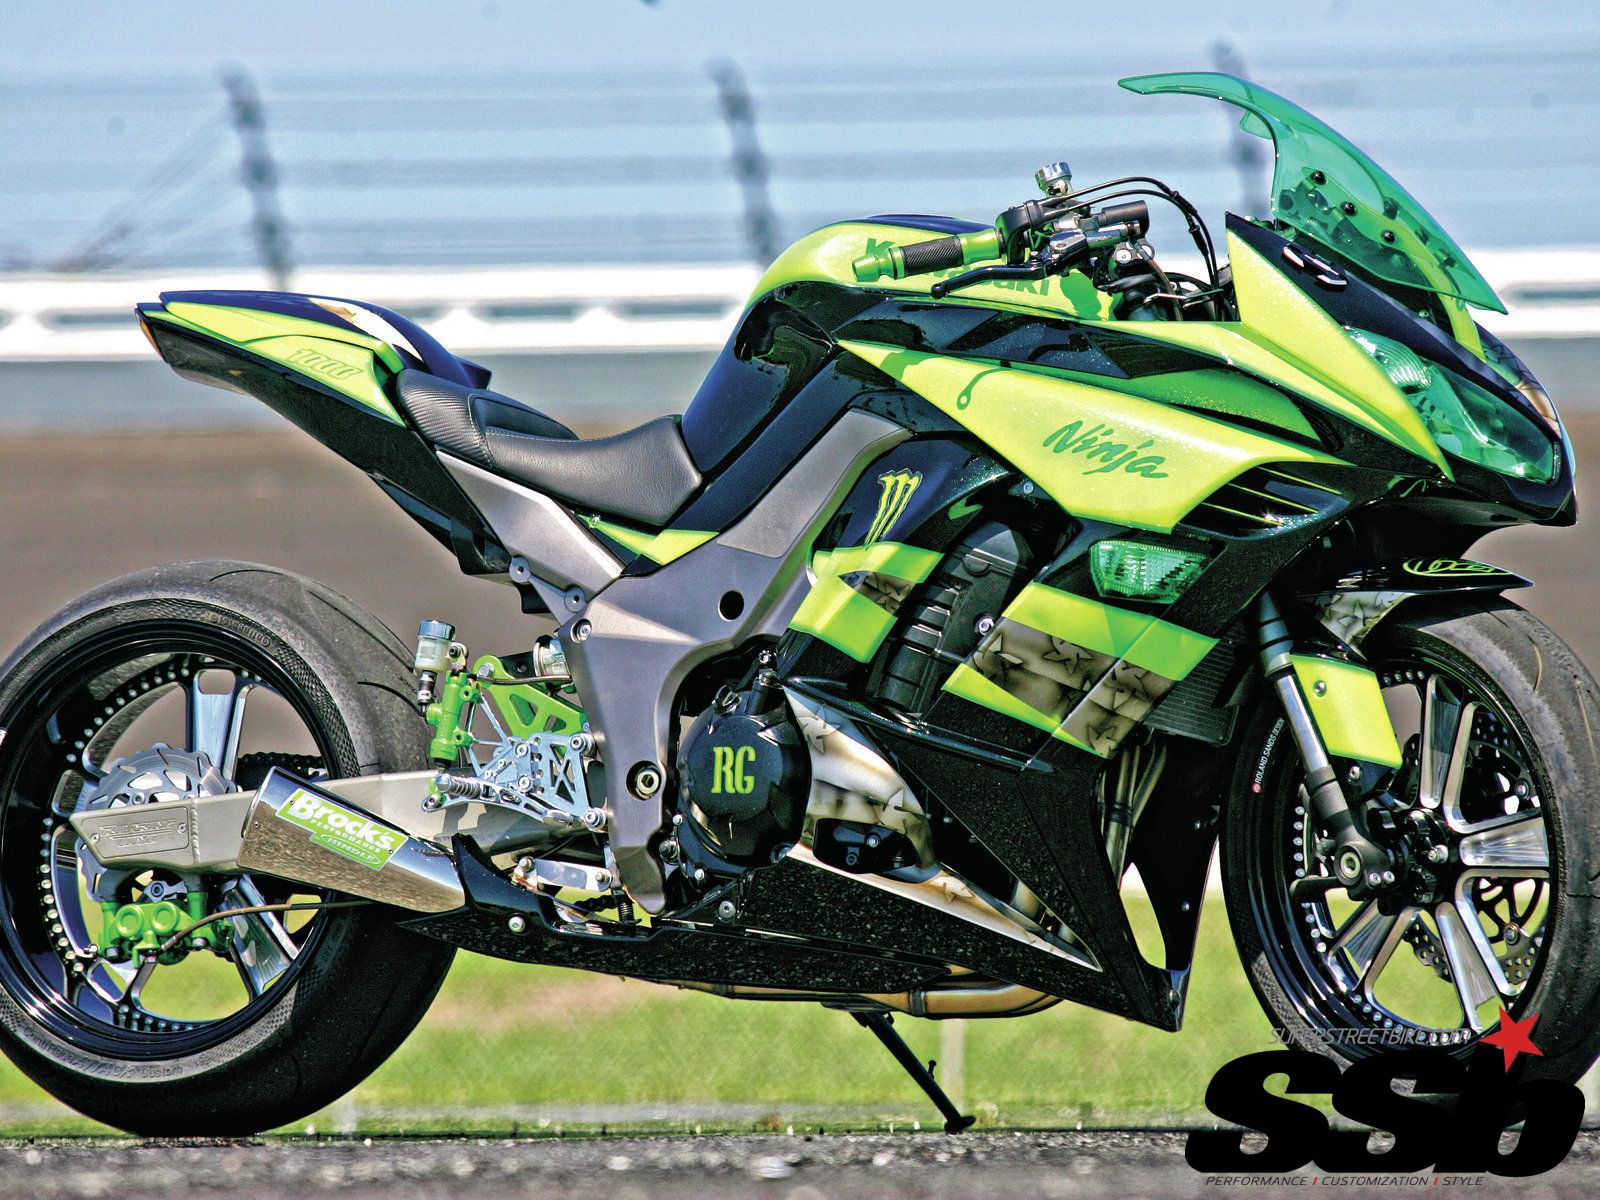 2011 Kawasaki Ninja 1000 Green With Identity Custom Bikes 300 Tarmac Full Exhaust System Carbon Fiber